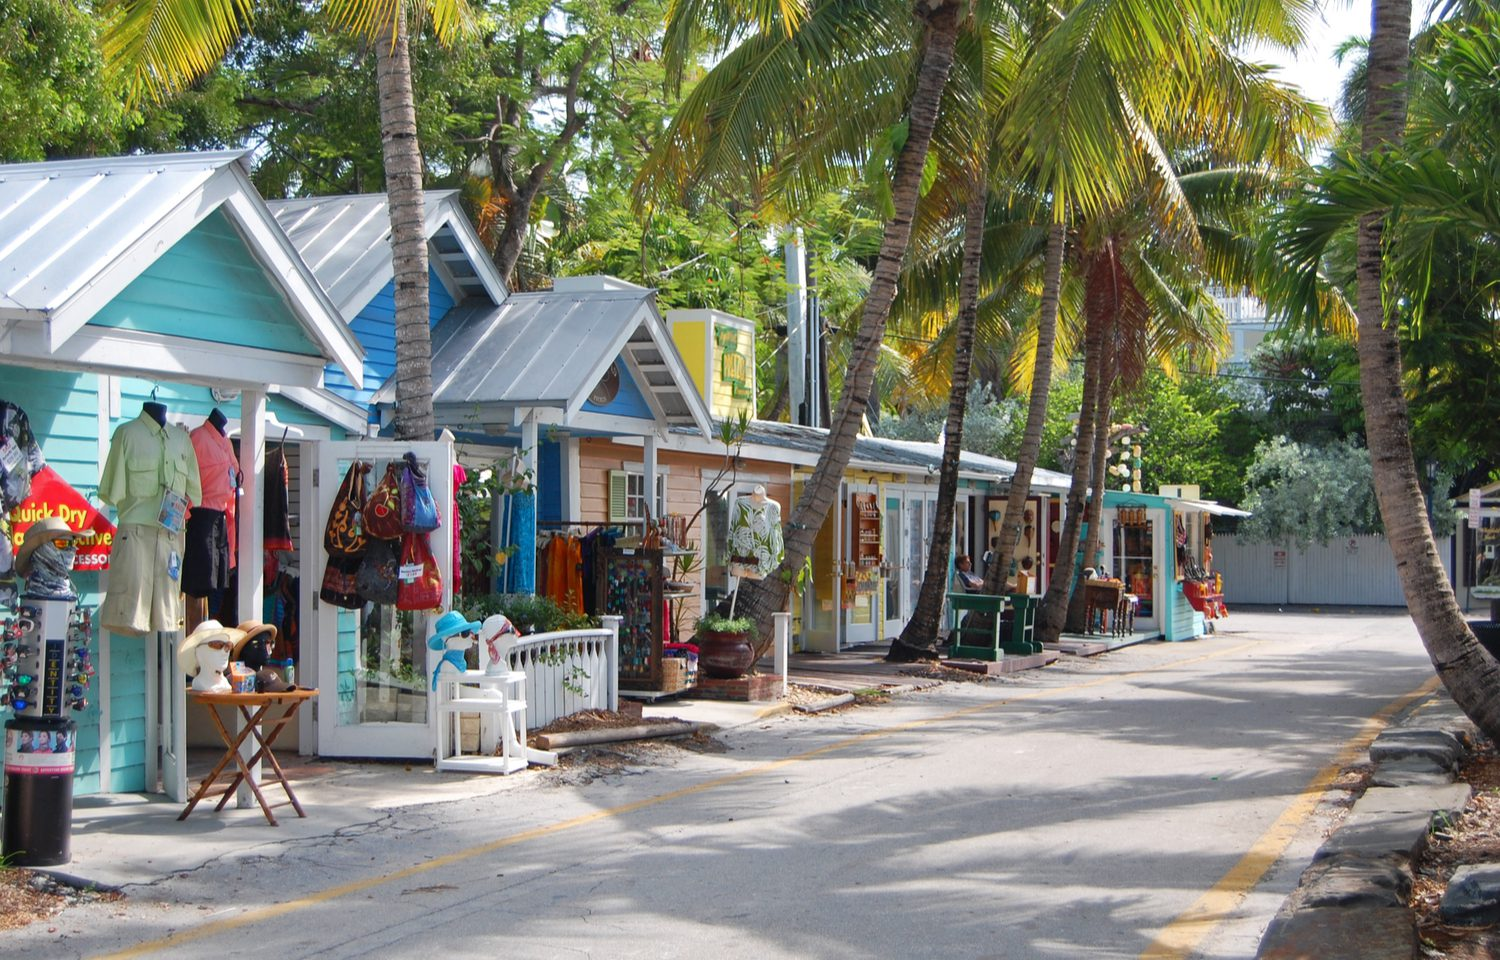 Bahama village shops in Key West